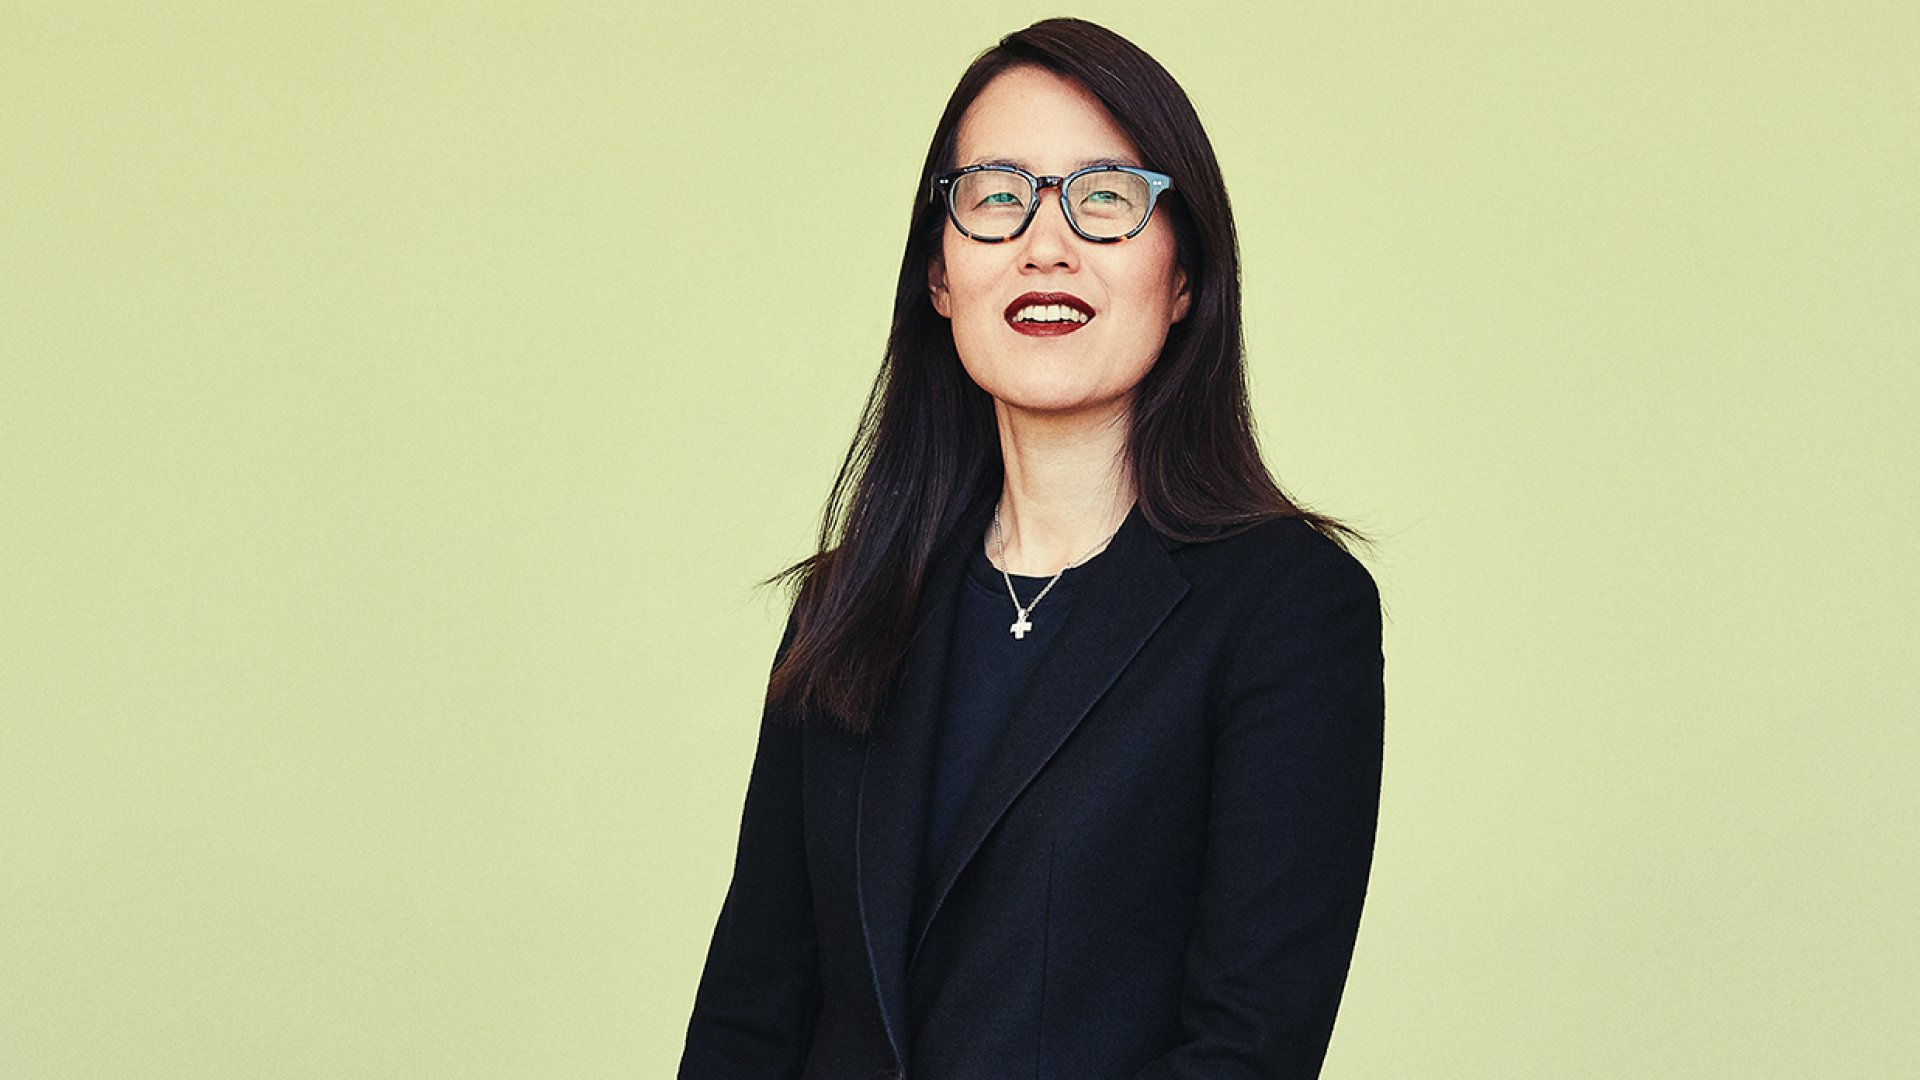 """""""There are still a lot of people who believe that I was wrong to sue,"""" says Ellen Pao, six years after filing her landmark gender discrimination lawsuit against Kleiner Perkins. """"It's been such an uphill battle for so long."""""""